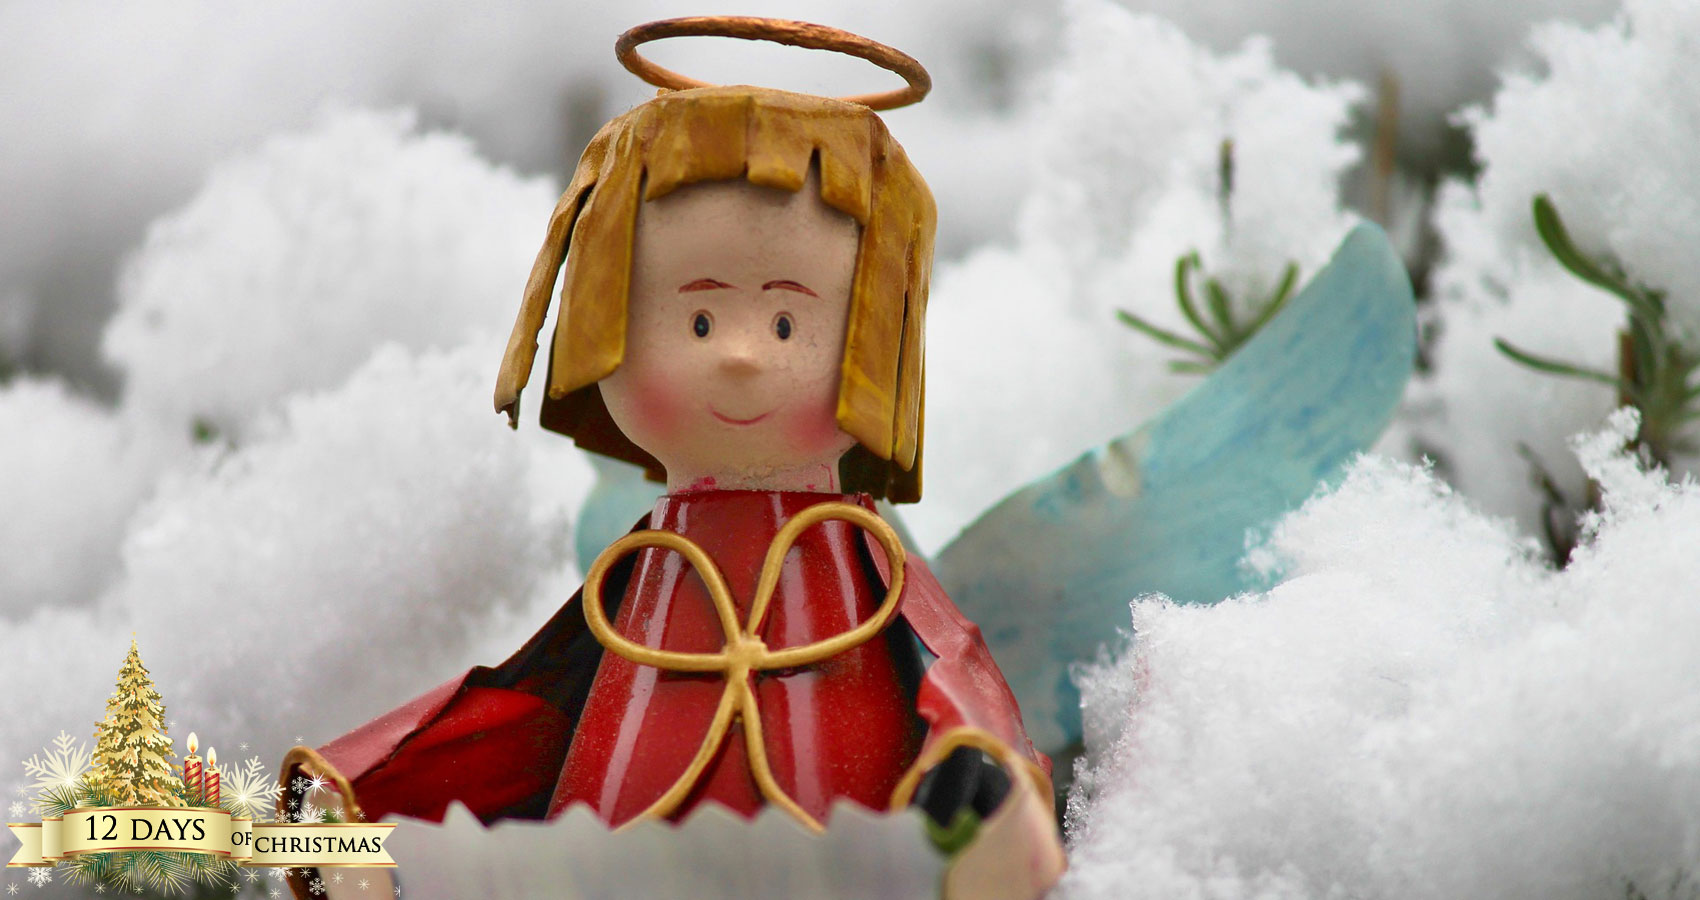 THE CHRISTMAS SPIRIT written by Phyllis P. Colucci at Spillwords.com